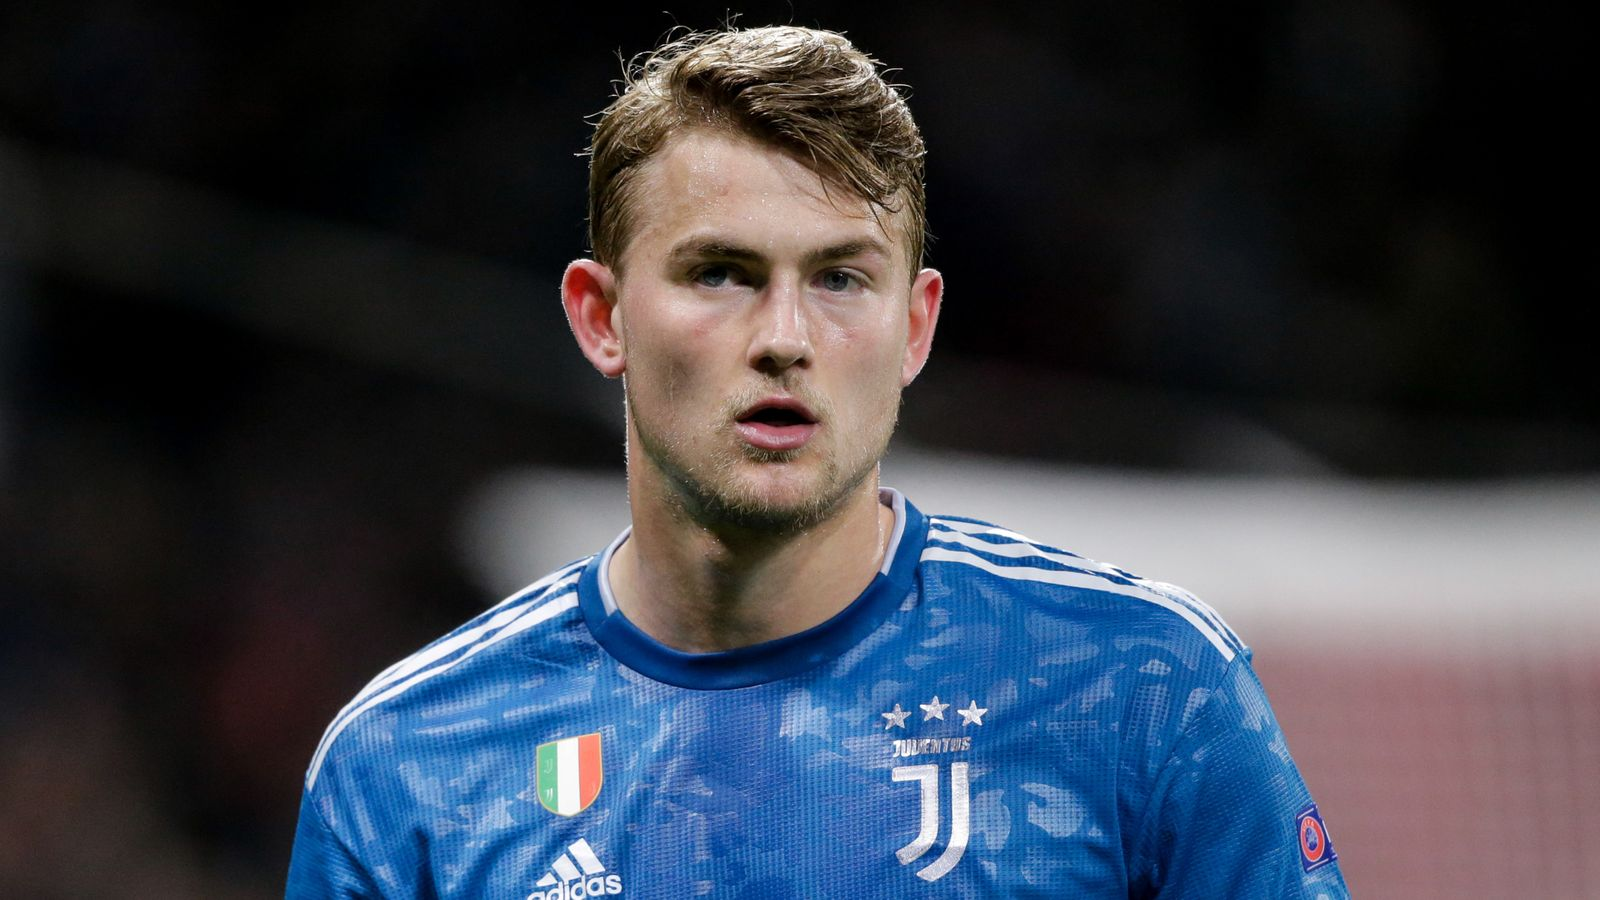 Manchester United transfer news and rumours - Sky Sports